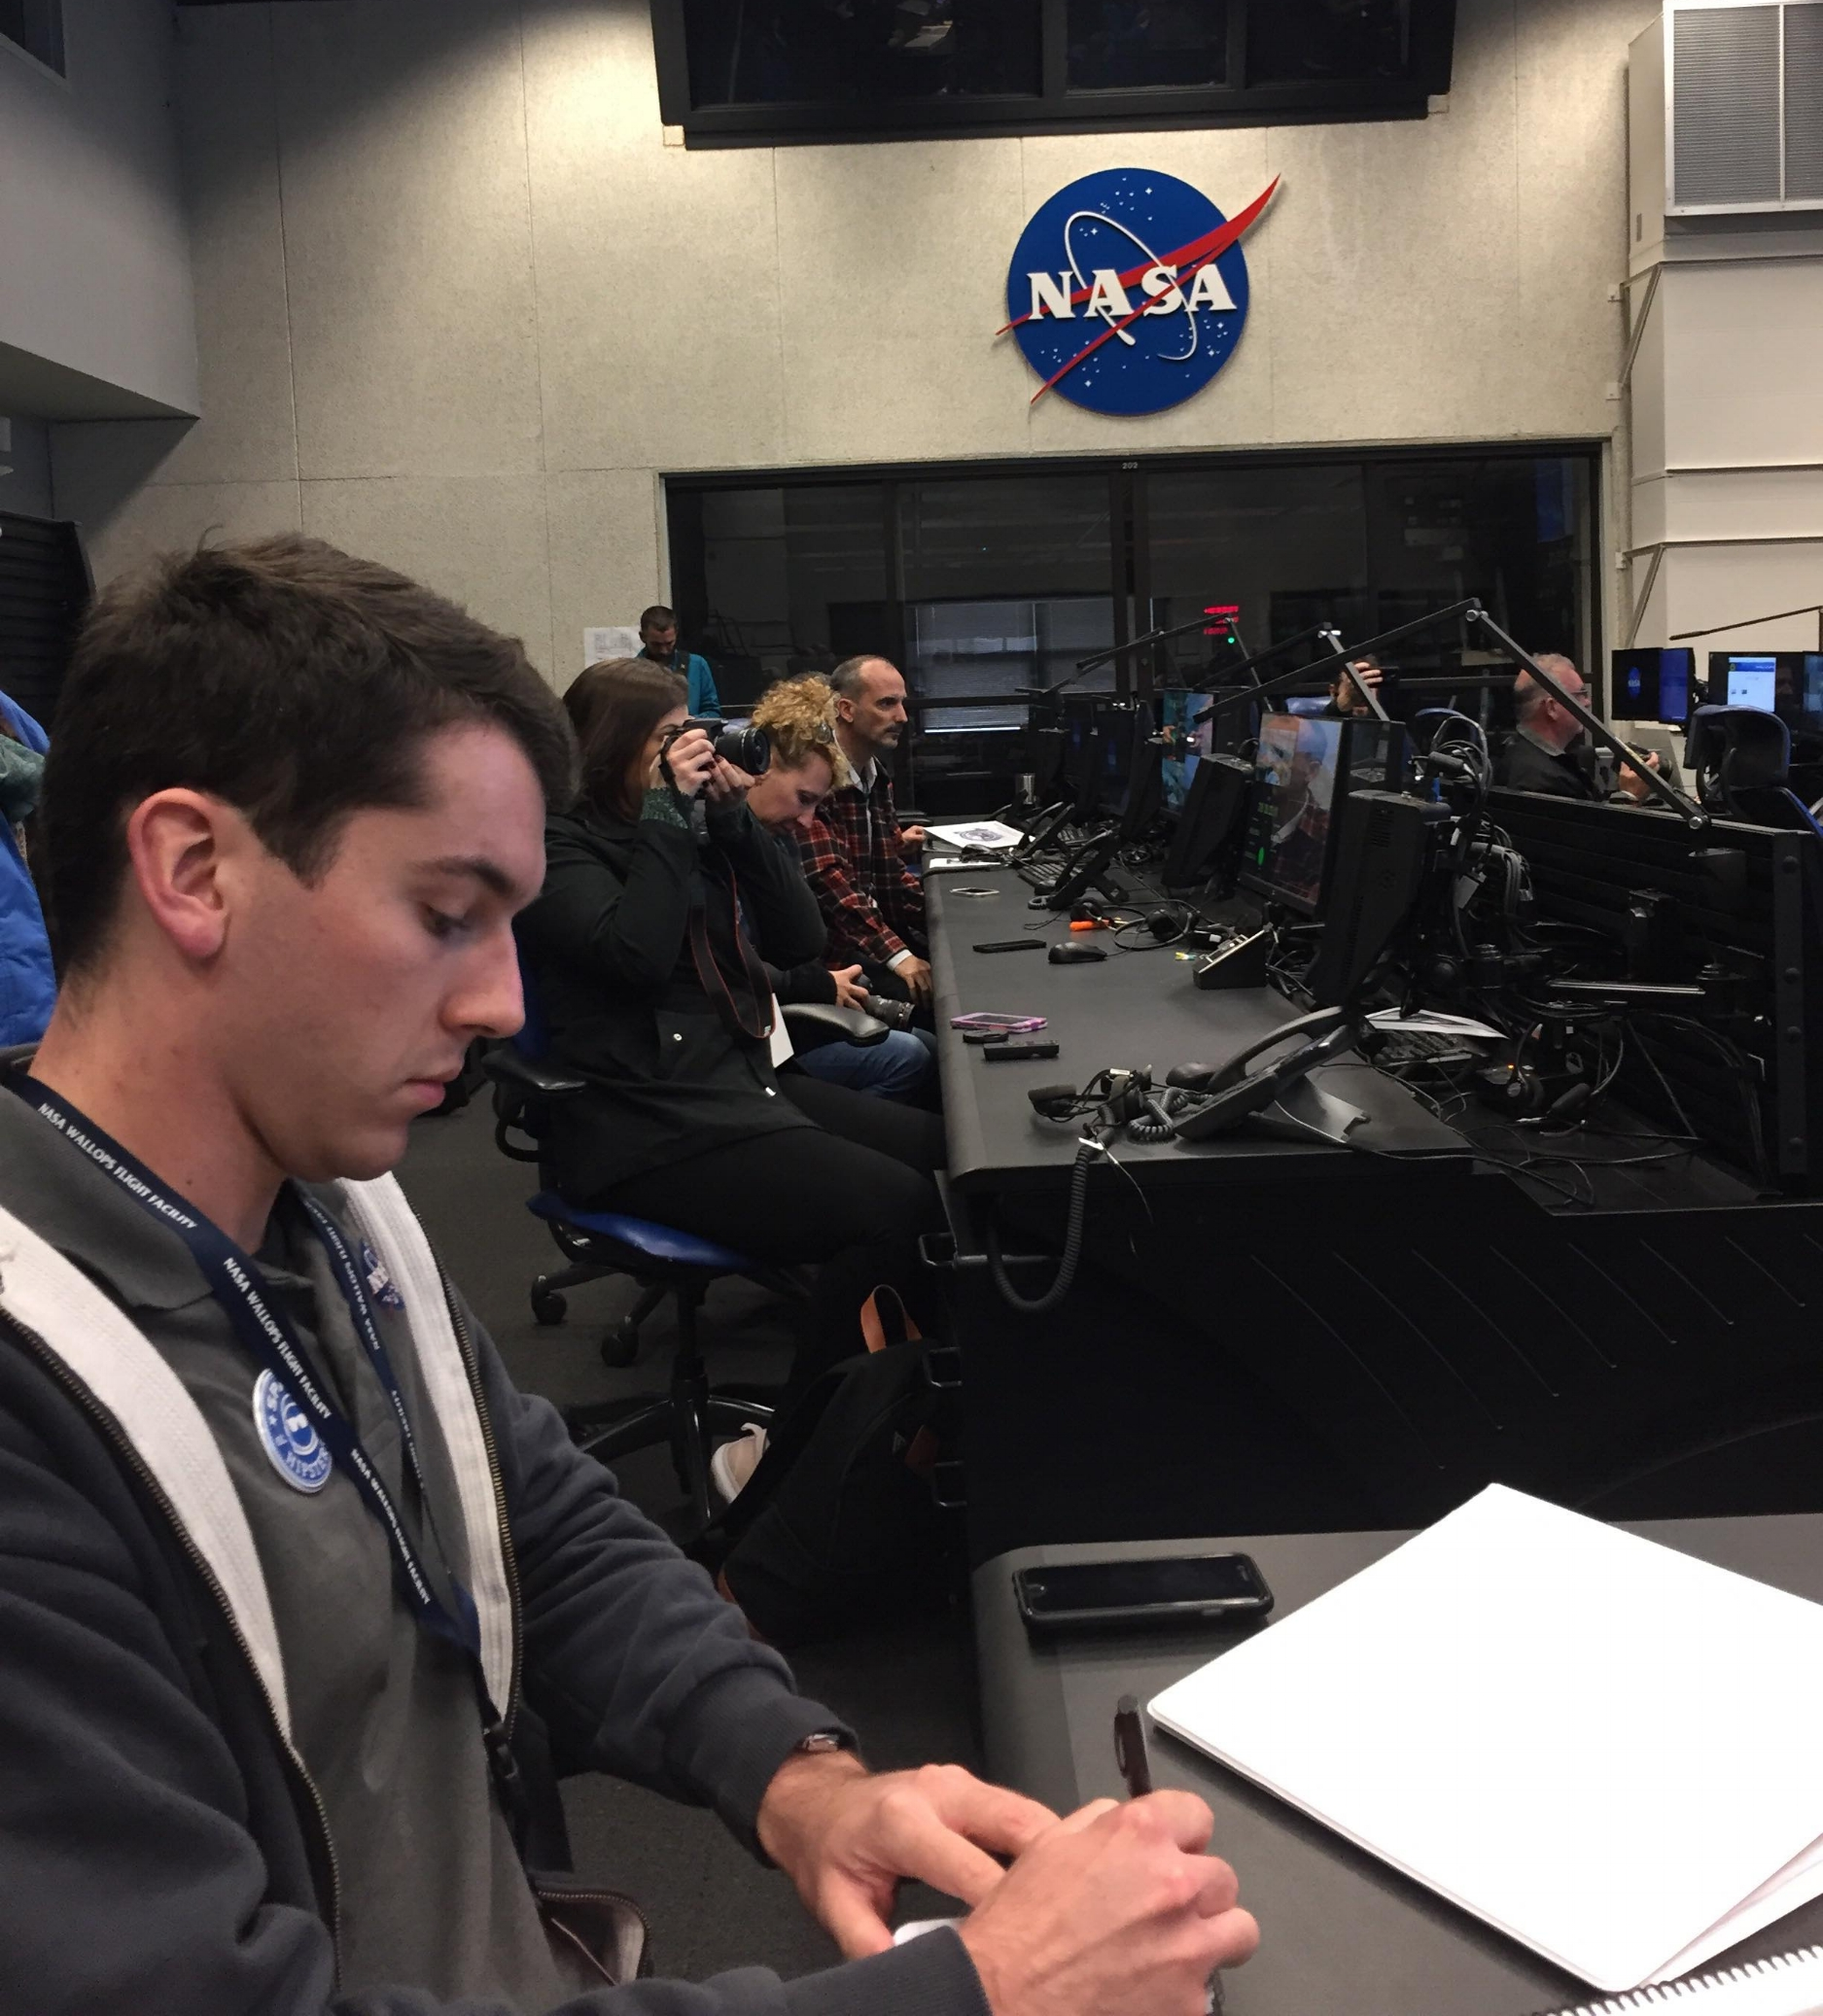 Taking notes on a flight controller's desk. Fun times! (Photo: Janet Kelly Heaton)